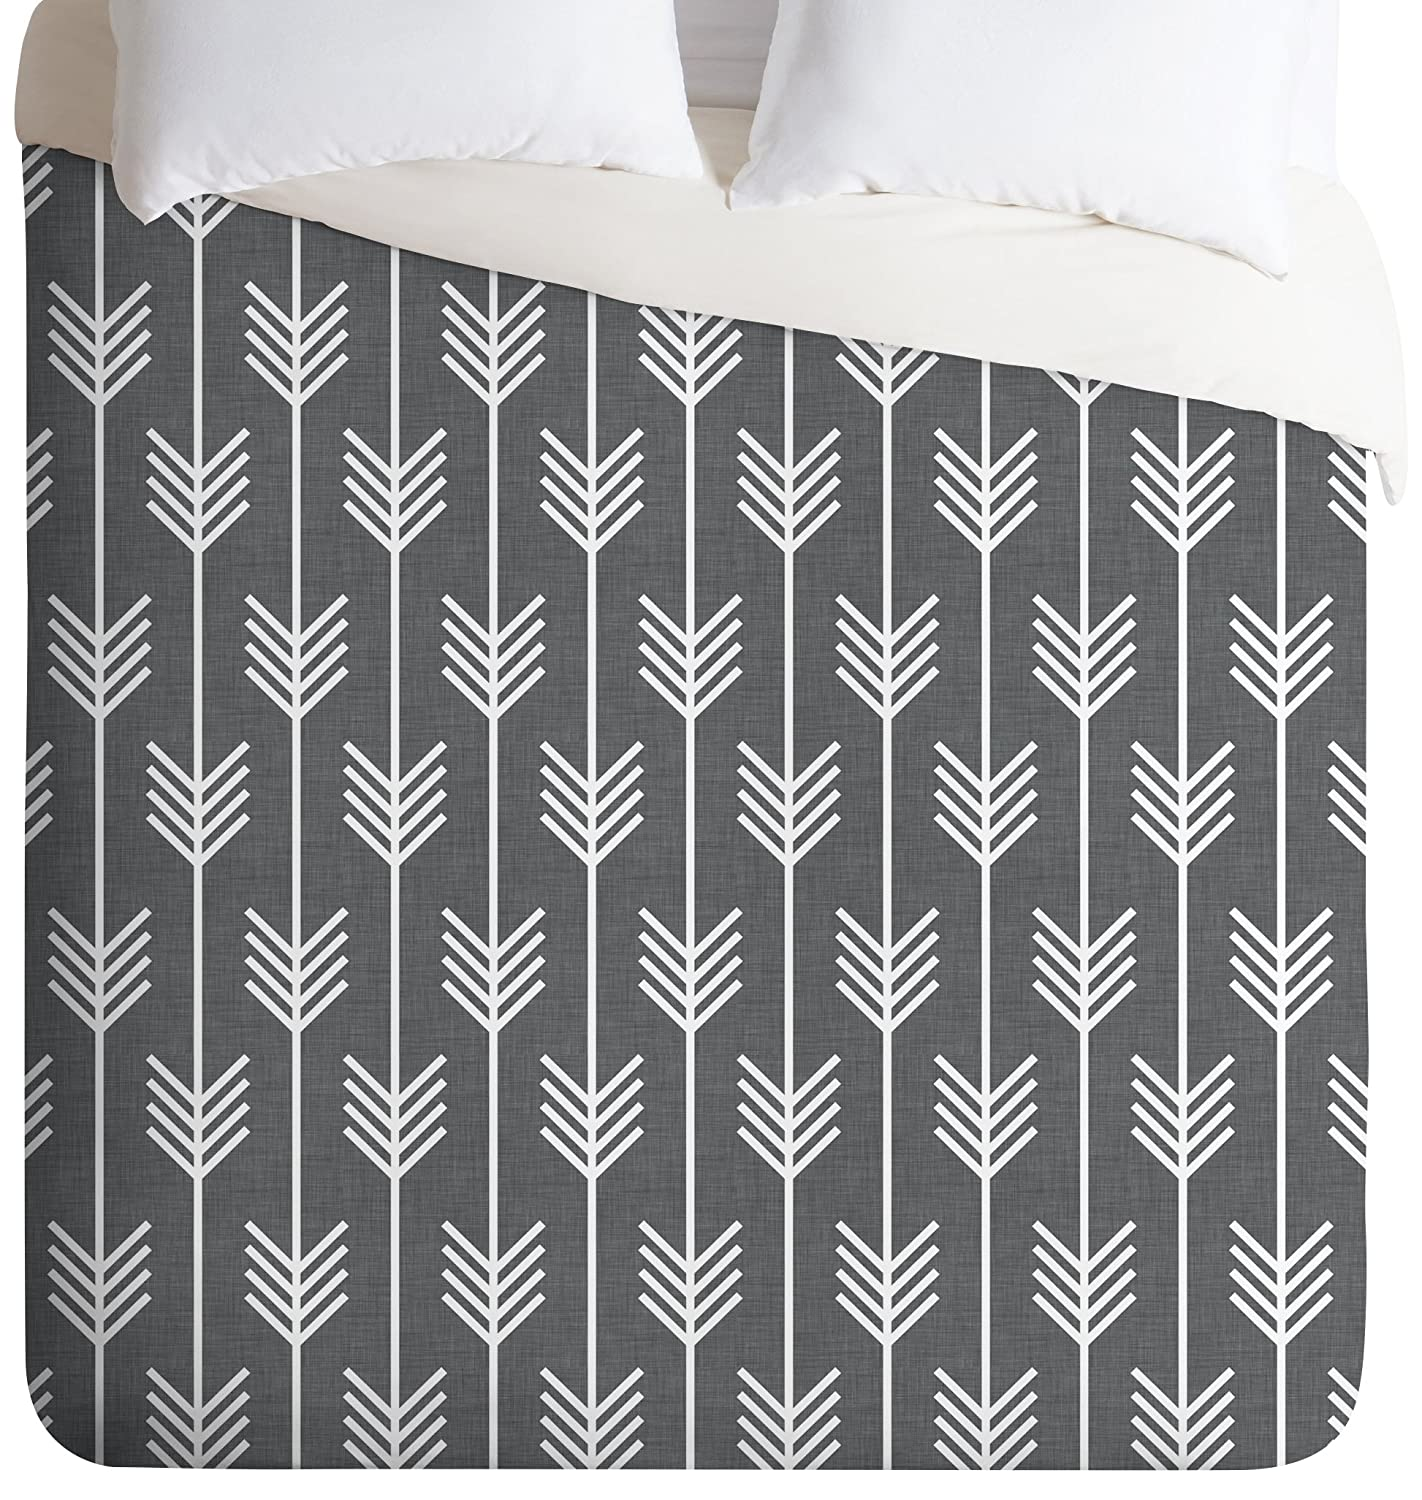 Deny Designs Holli Zollinger Arrows Grey Duvet Cover, Twin/Twin XL